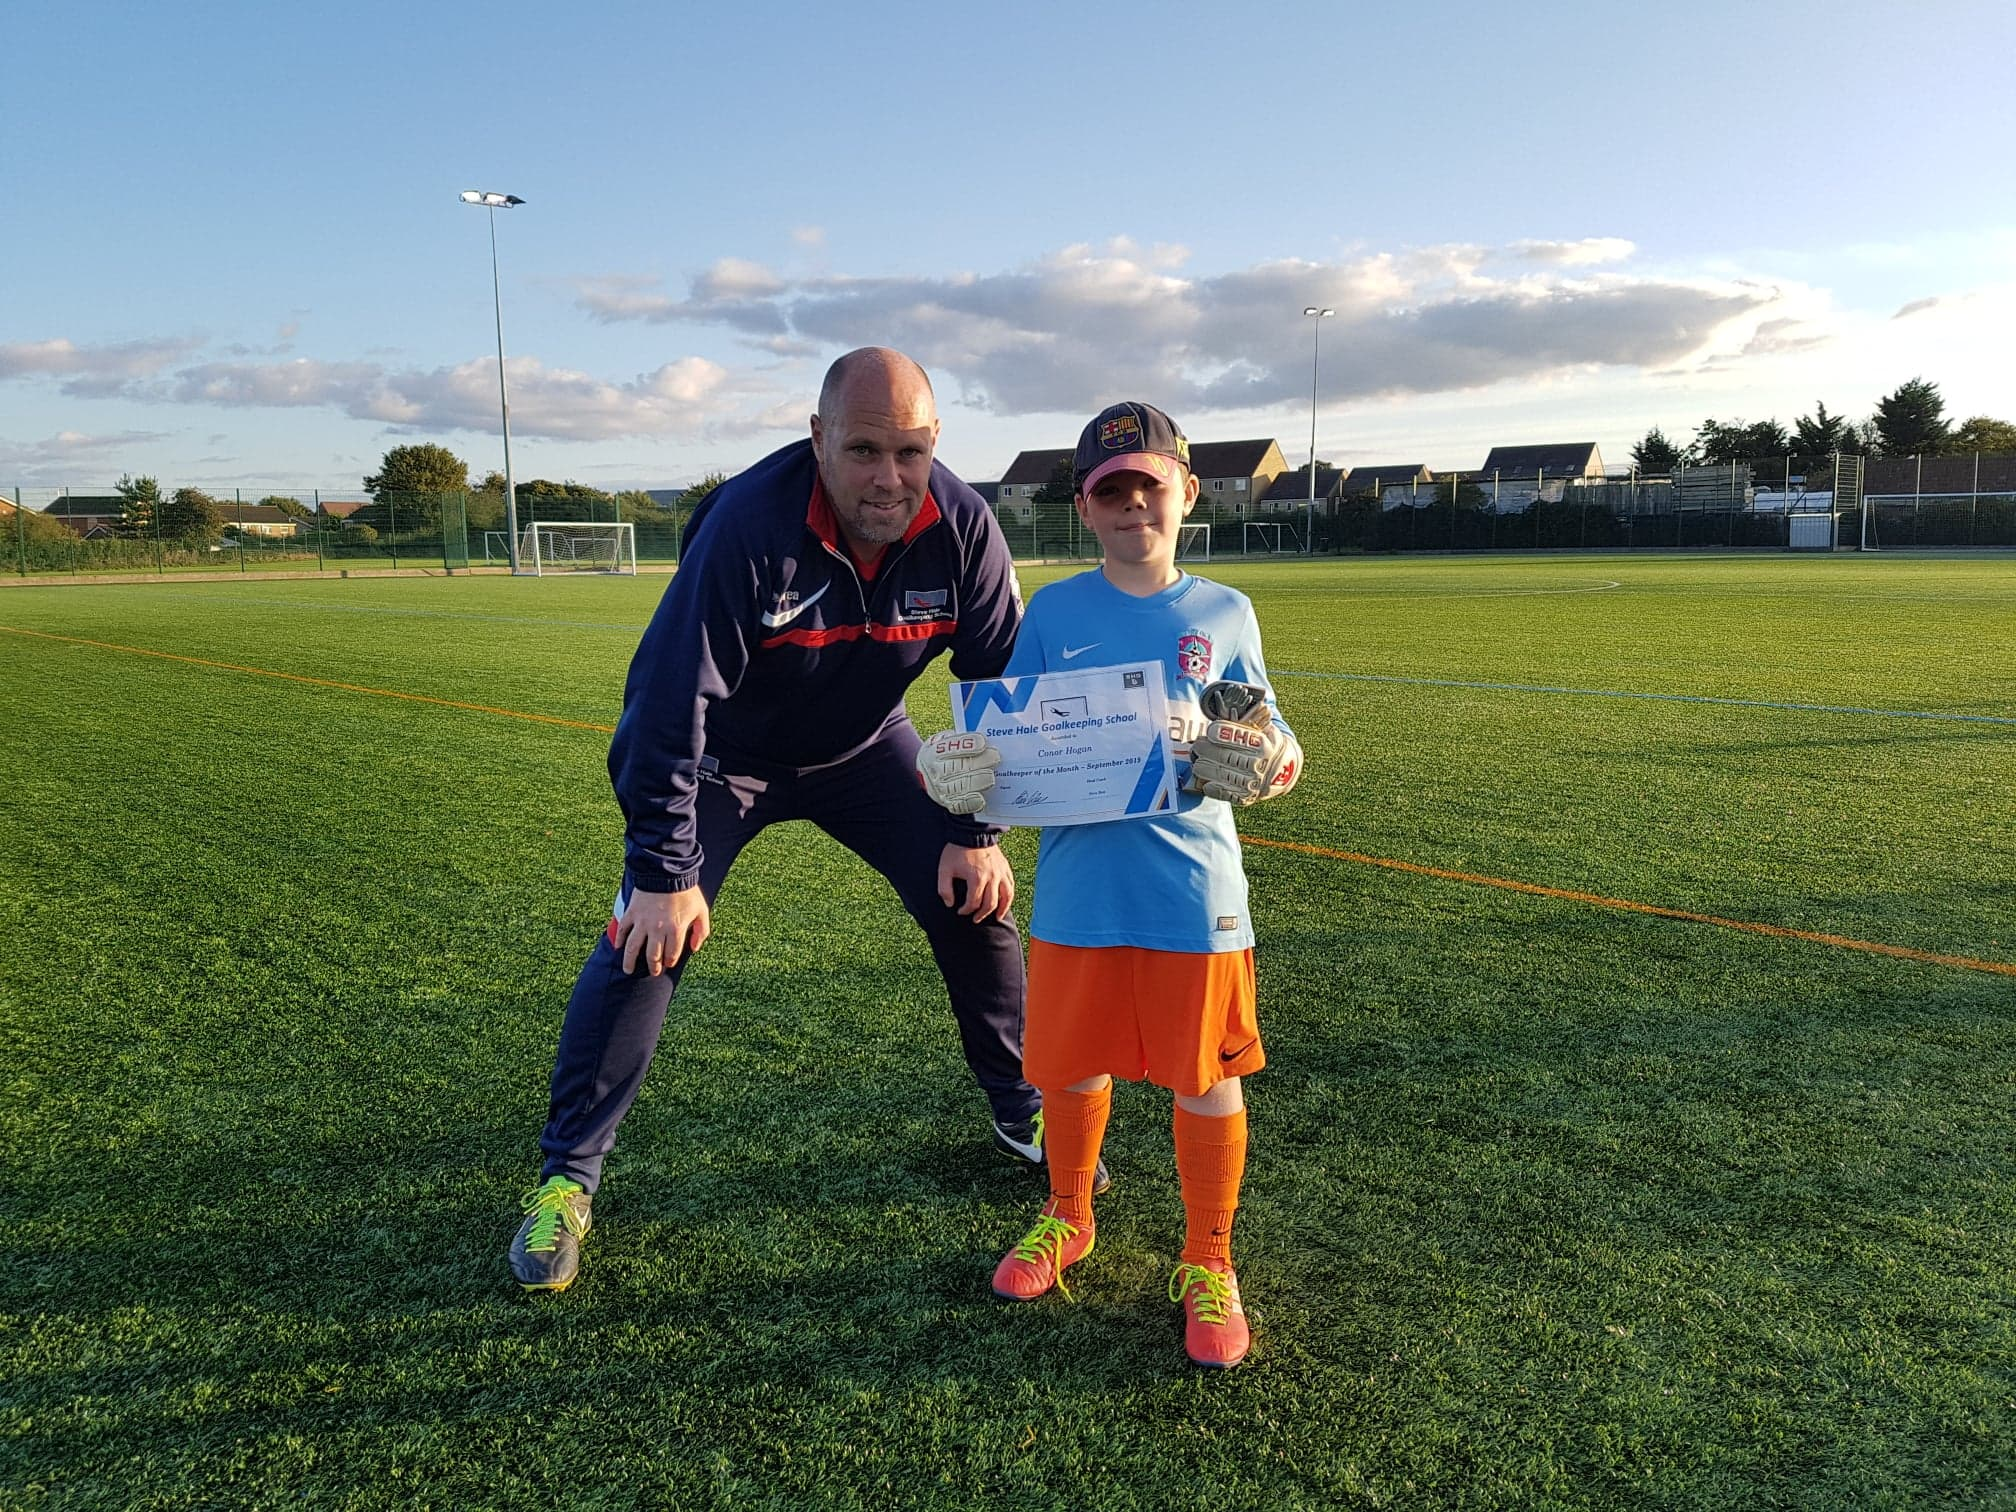 Conor-Hogan-GK-of-the-Month